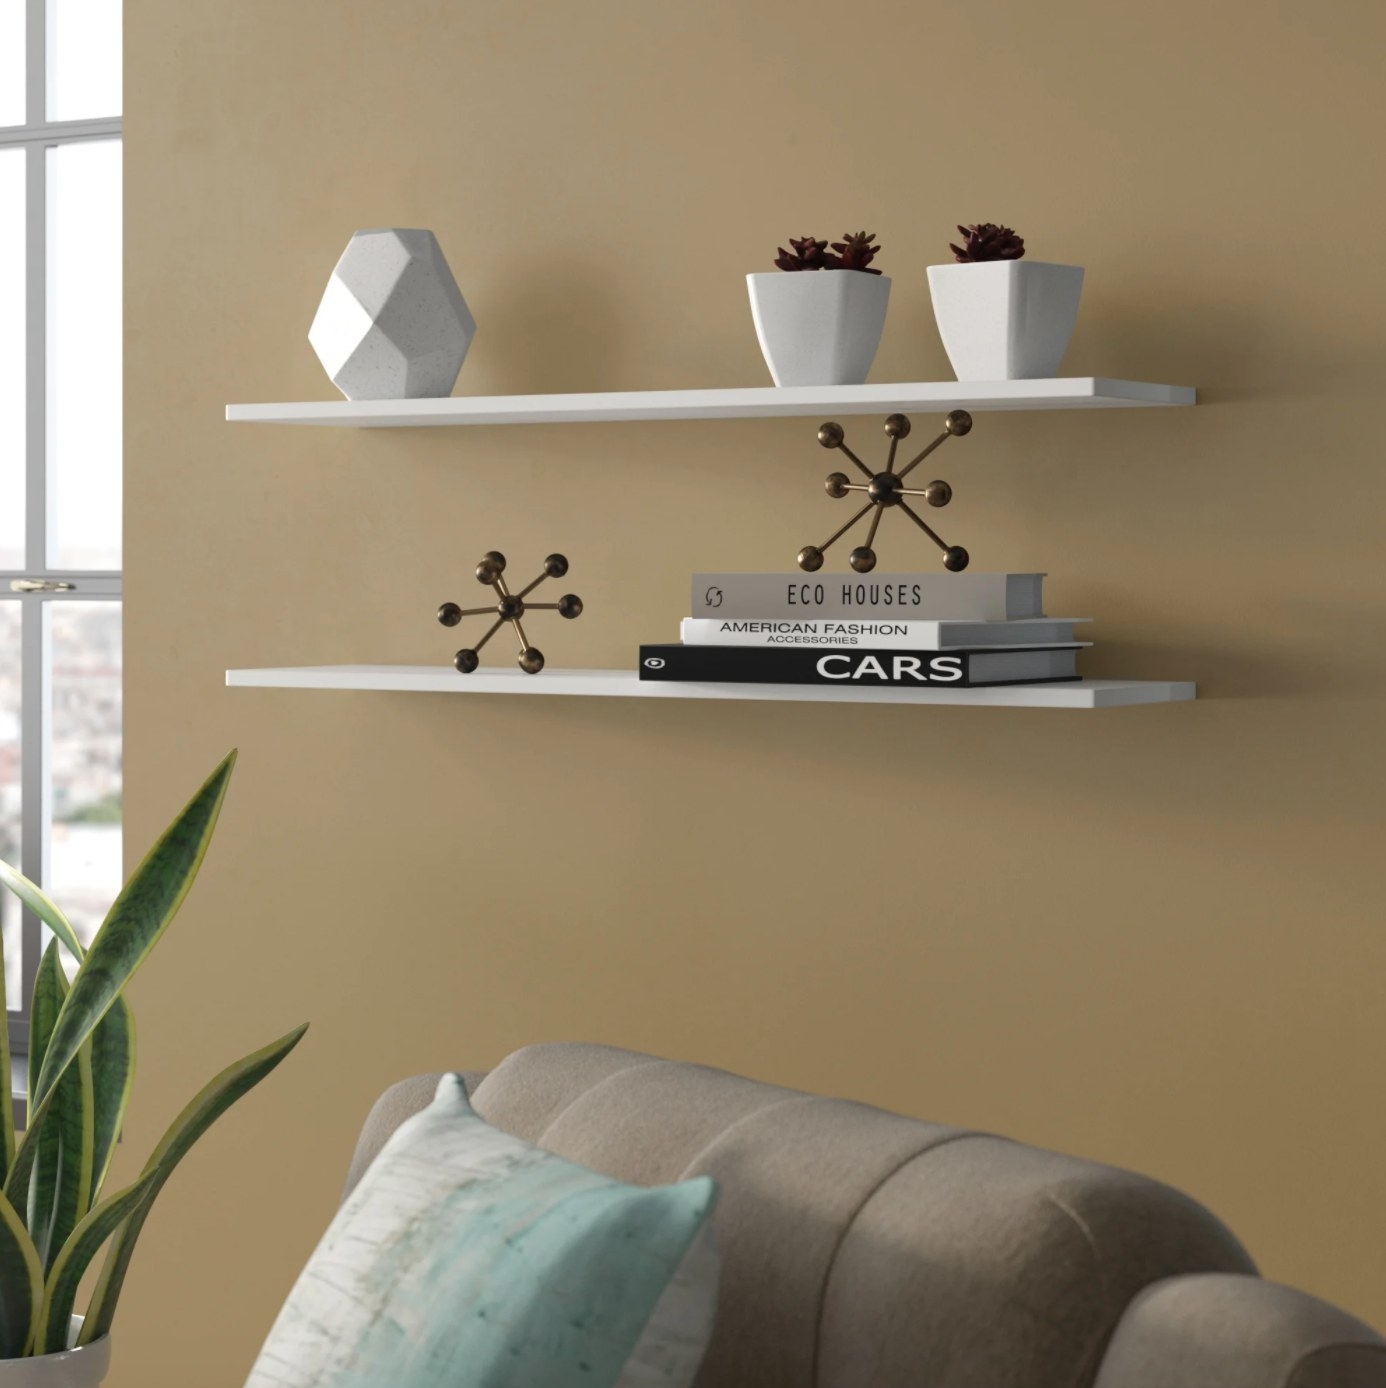 The set of floating shelves in white